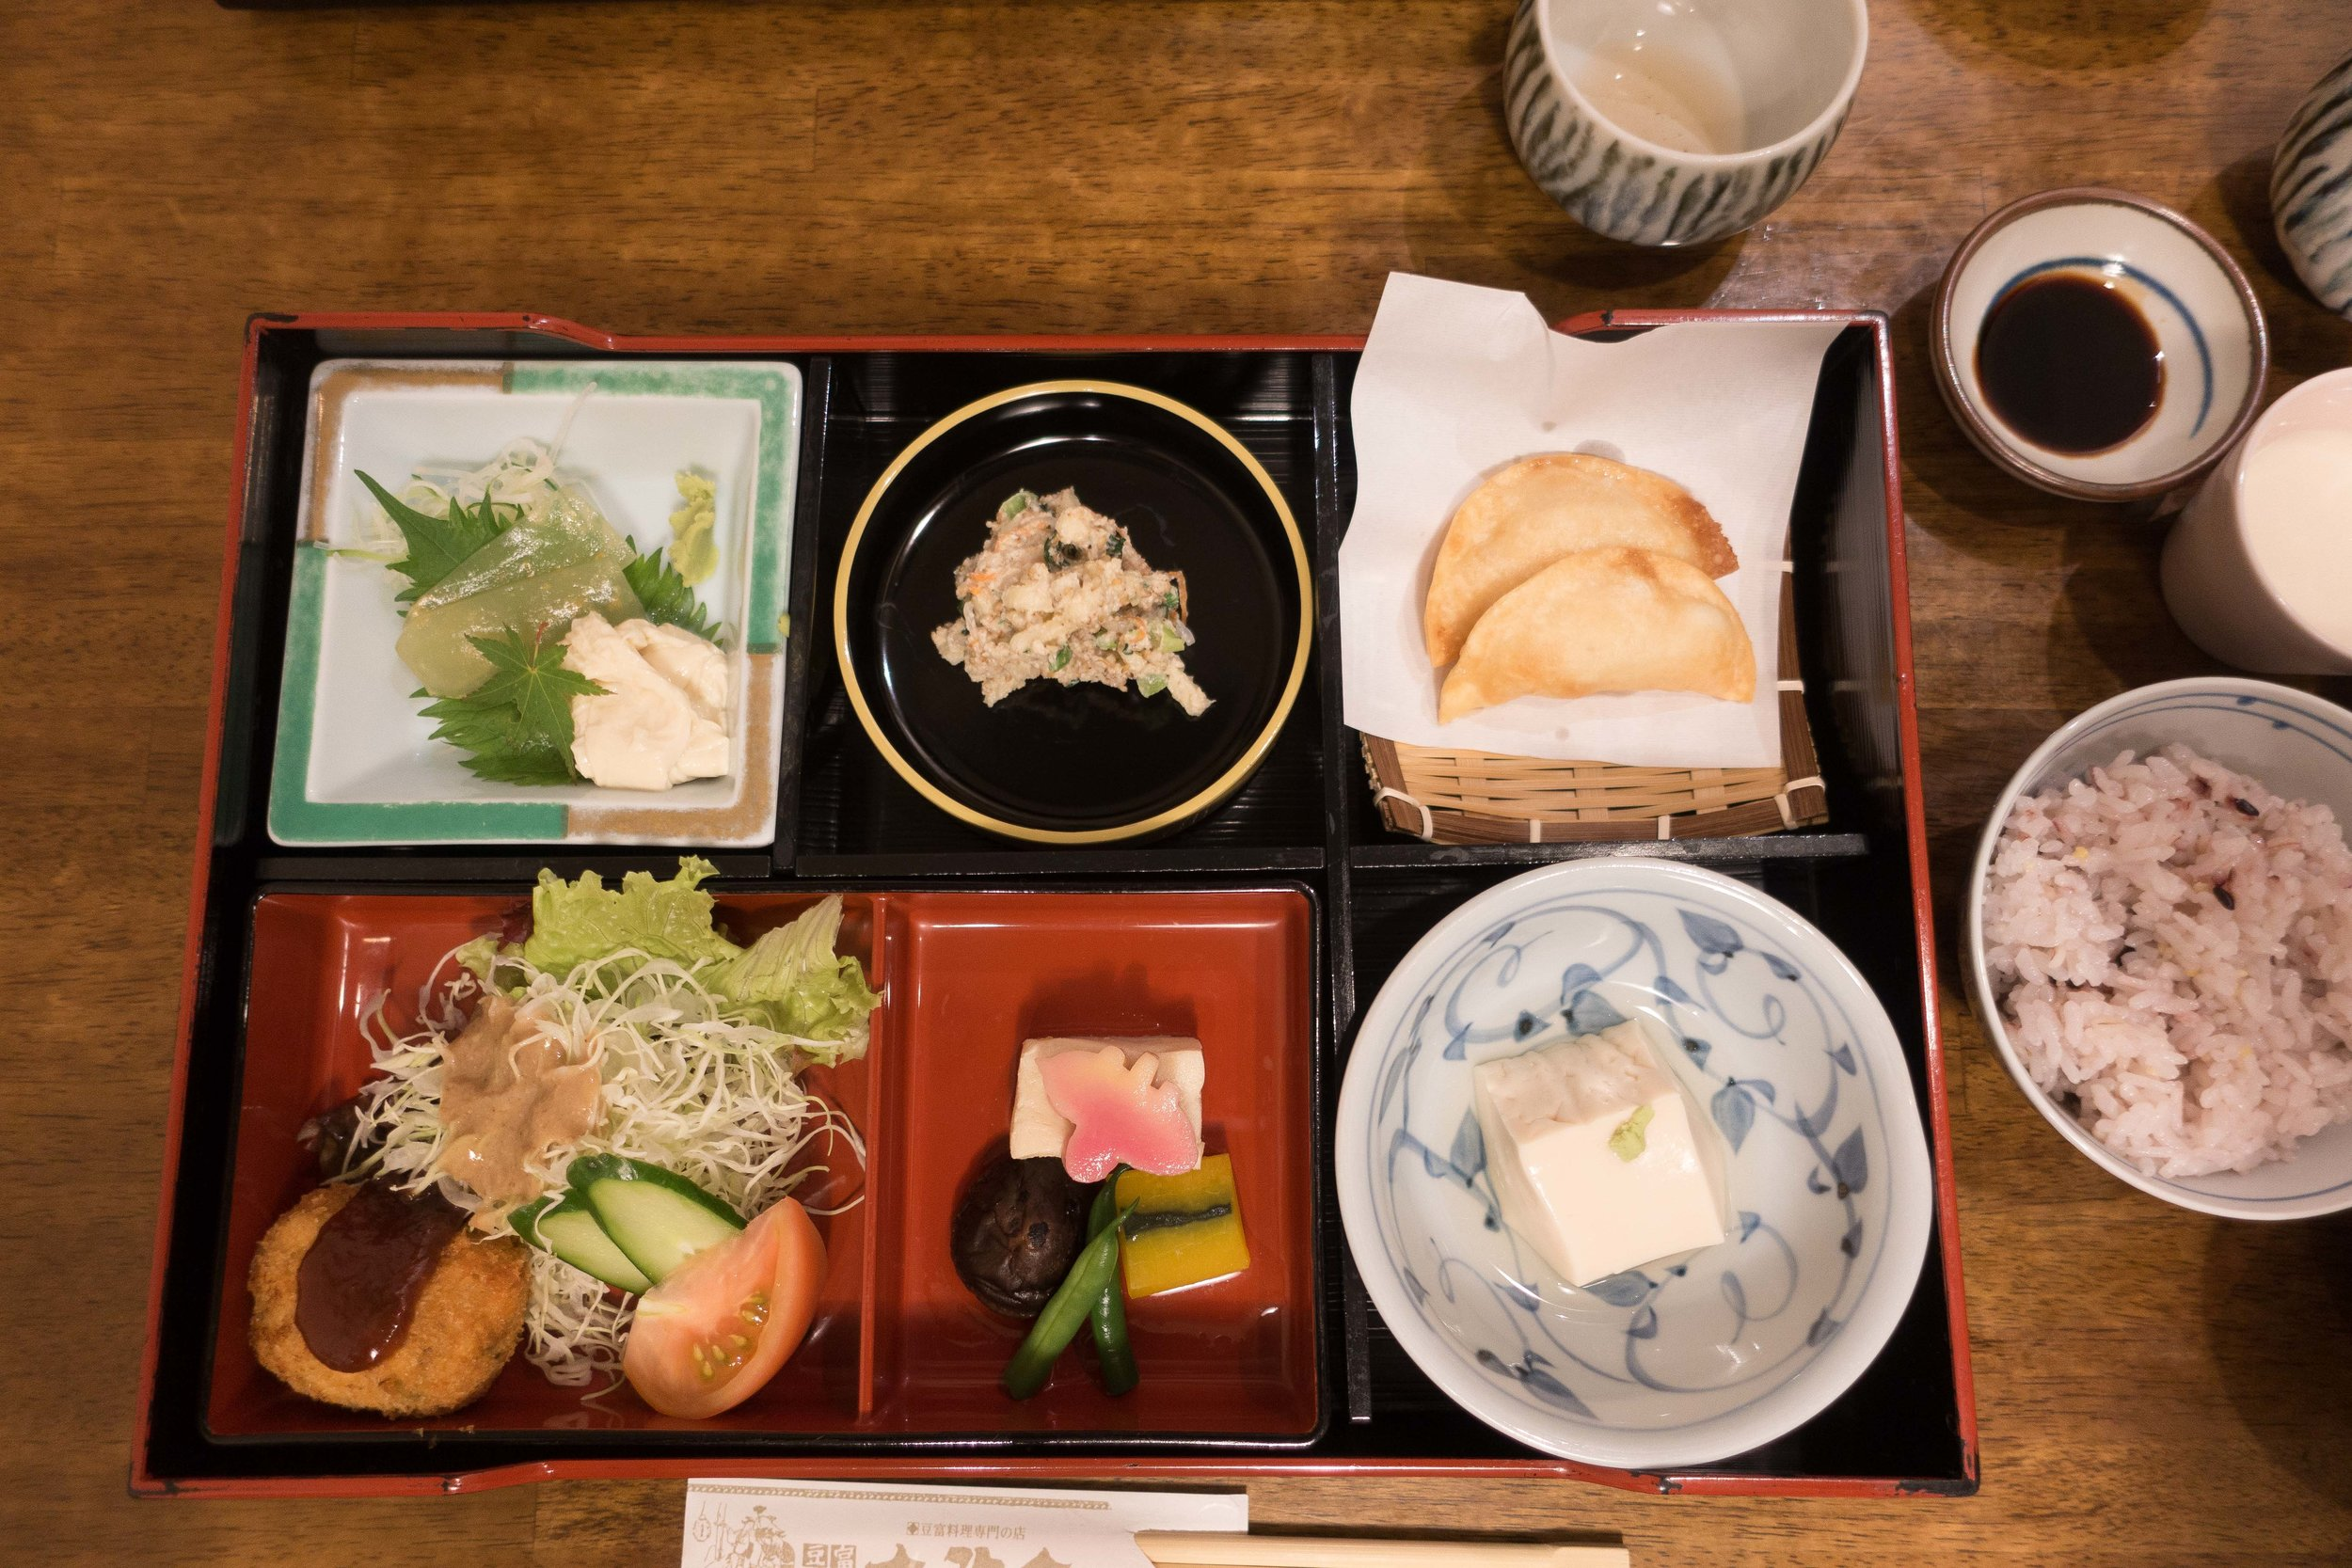 There is of course, excellent food in Nagasaki. This was lunch at a restaurant that focuses on many forms of tofu.